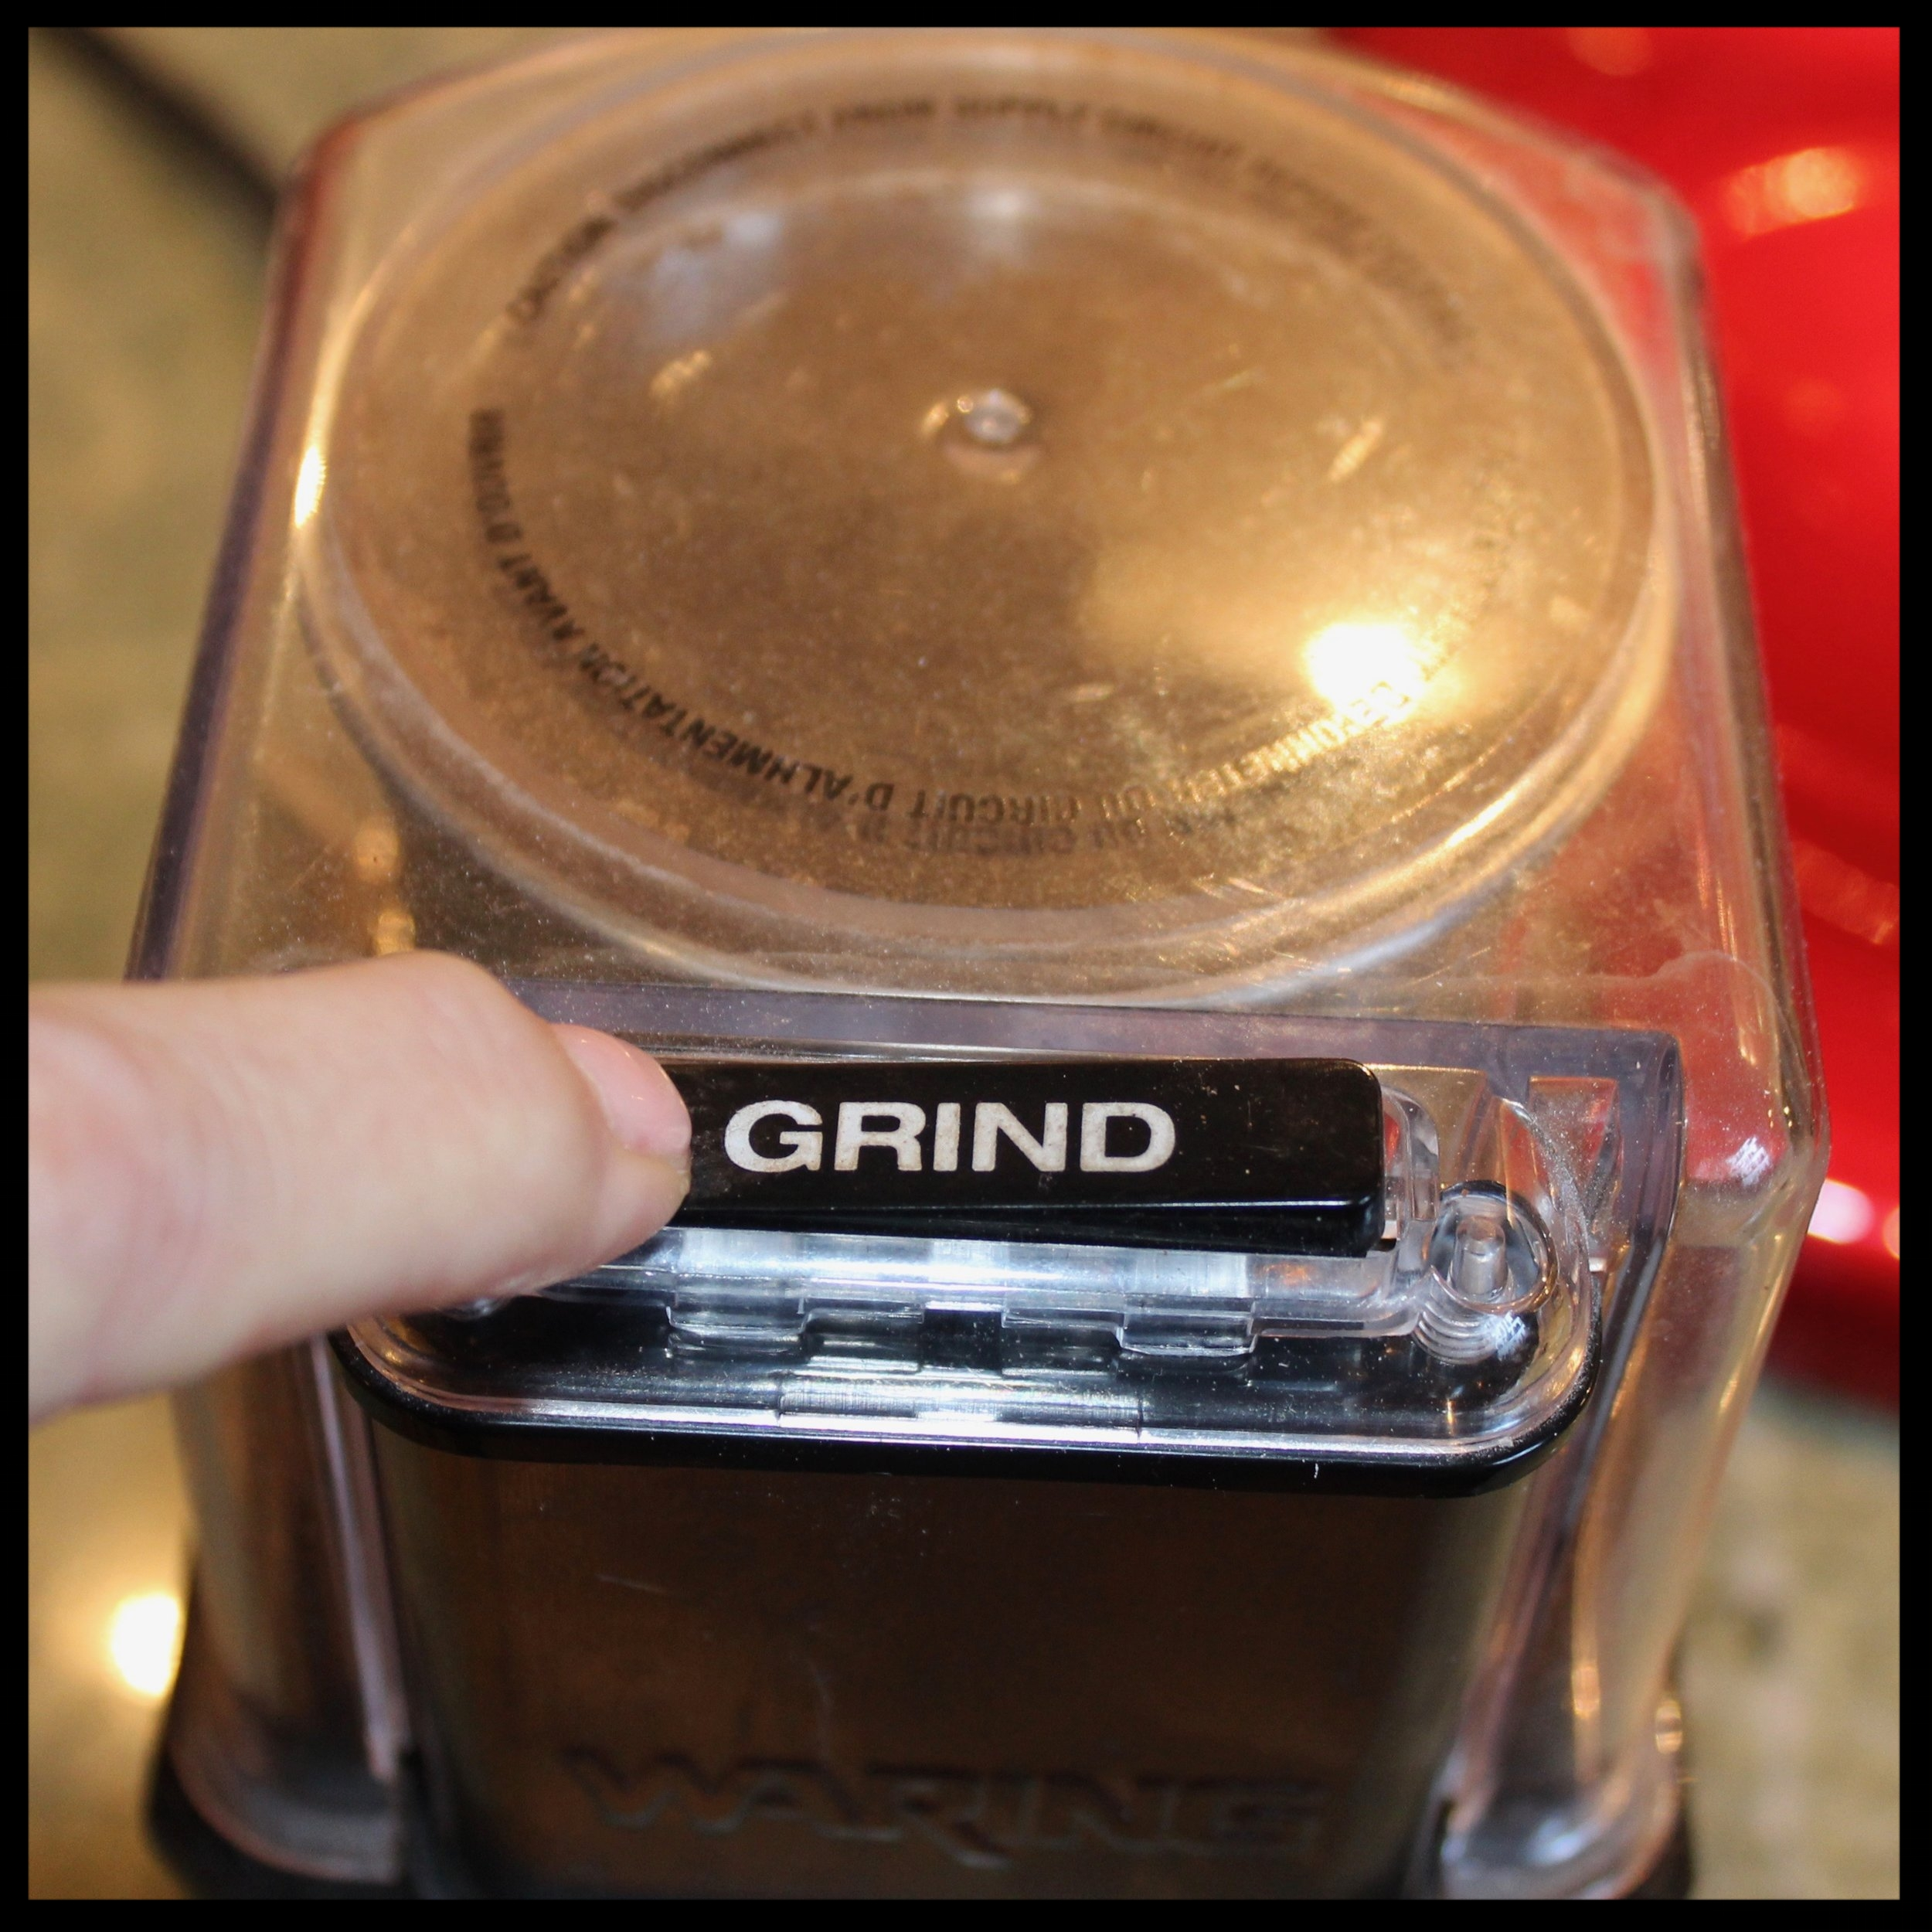 INSTRUCTIONS:   1. Put 2 TB of caraway in a clean coffee grinder, spice grinder or mortar and pestle.  KIDDOCJJ tip: If your grinder has residue from prior uses, just add a couple of TB of dry white uncooked rice to the grinder. Pulverize and dump the rice in the trash. The rice will pick up the oils and residue. Wipe clean with a paper towel. Now your grinder is clean, with no left behind odors.